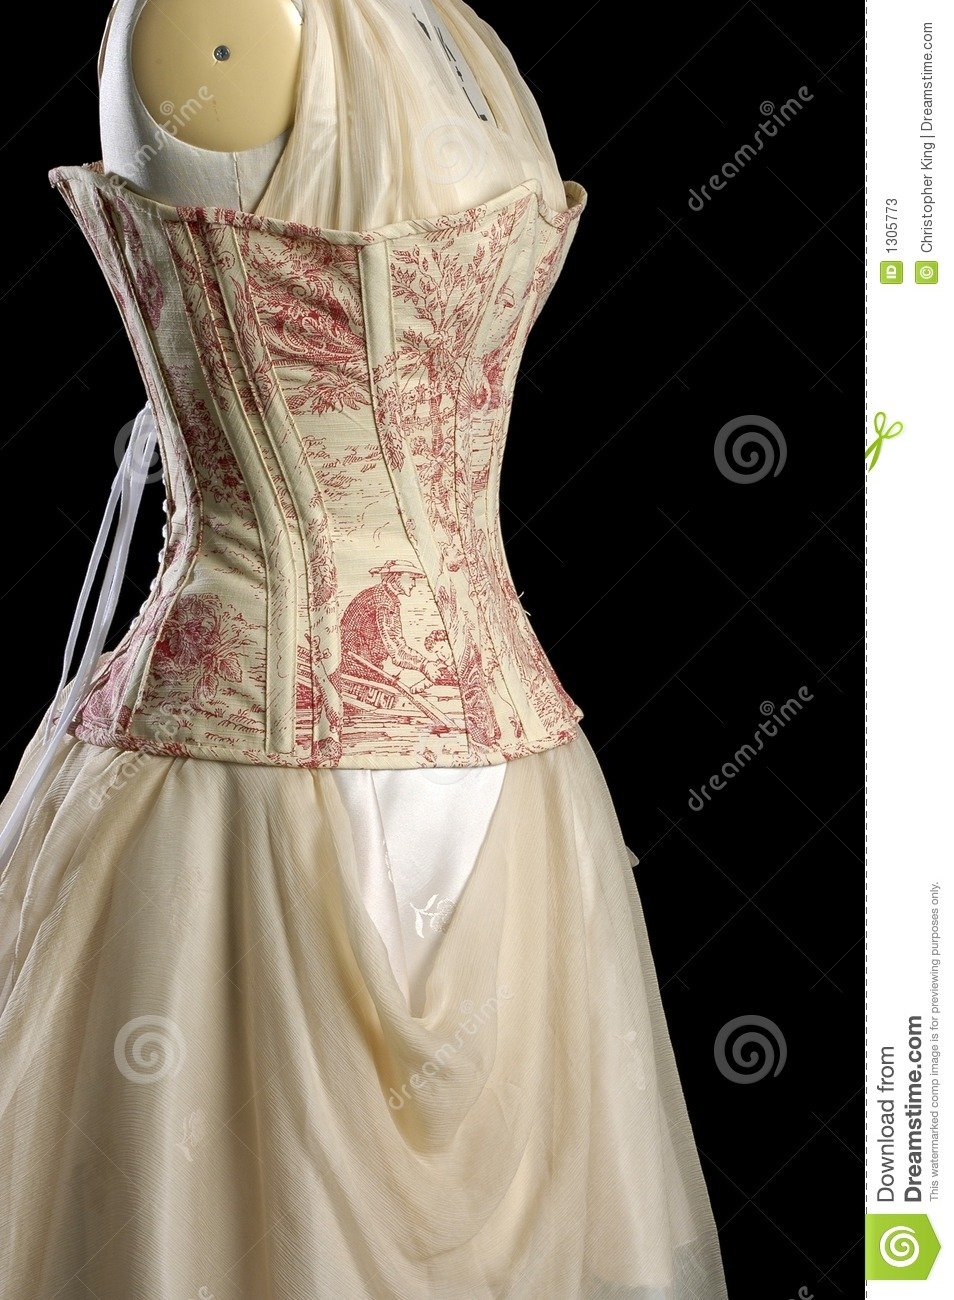 Vintage Corset And Dress On A Models Dummy Stock Photos - Image ...